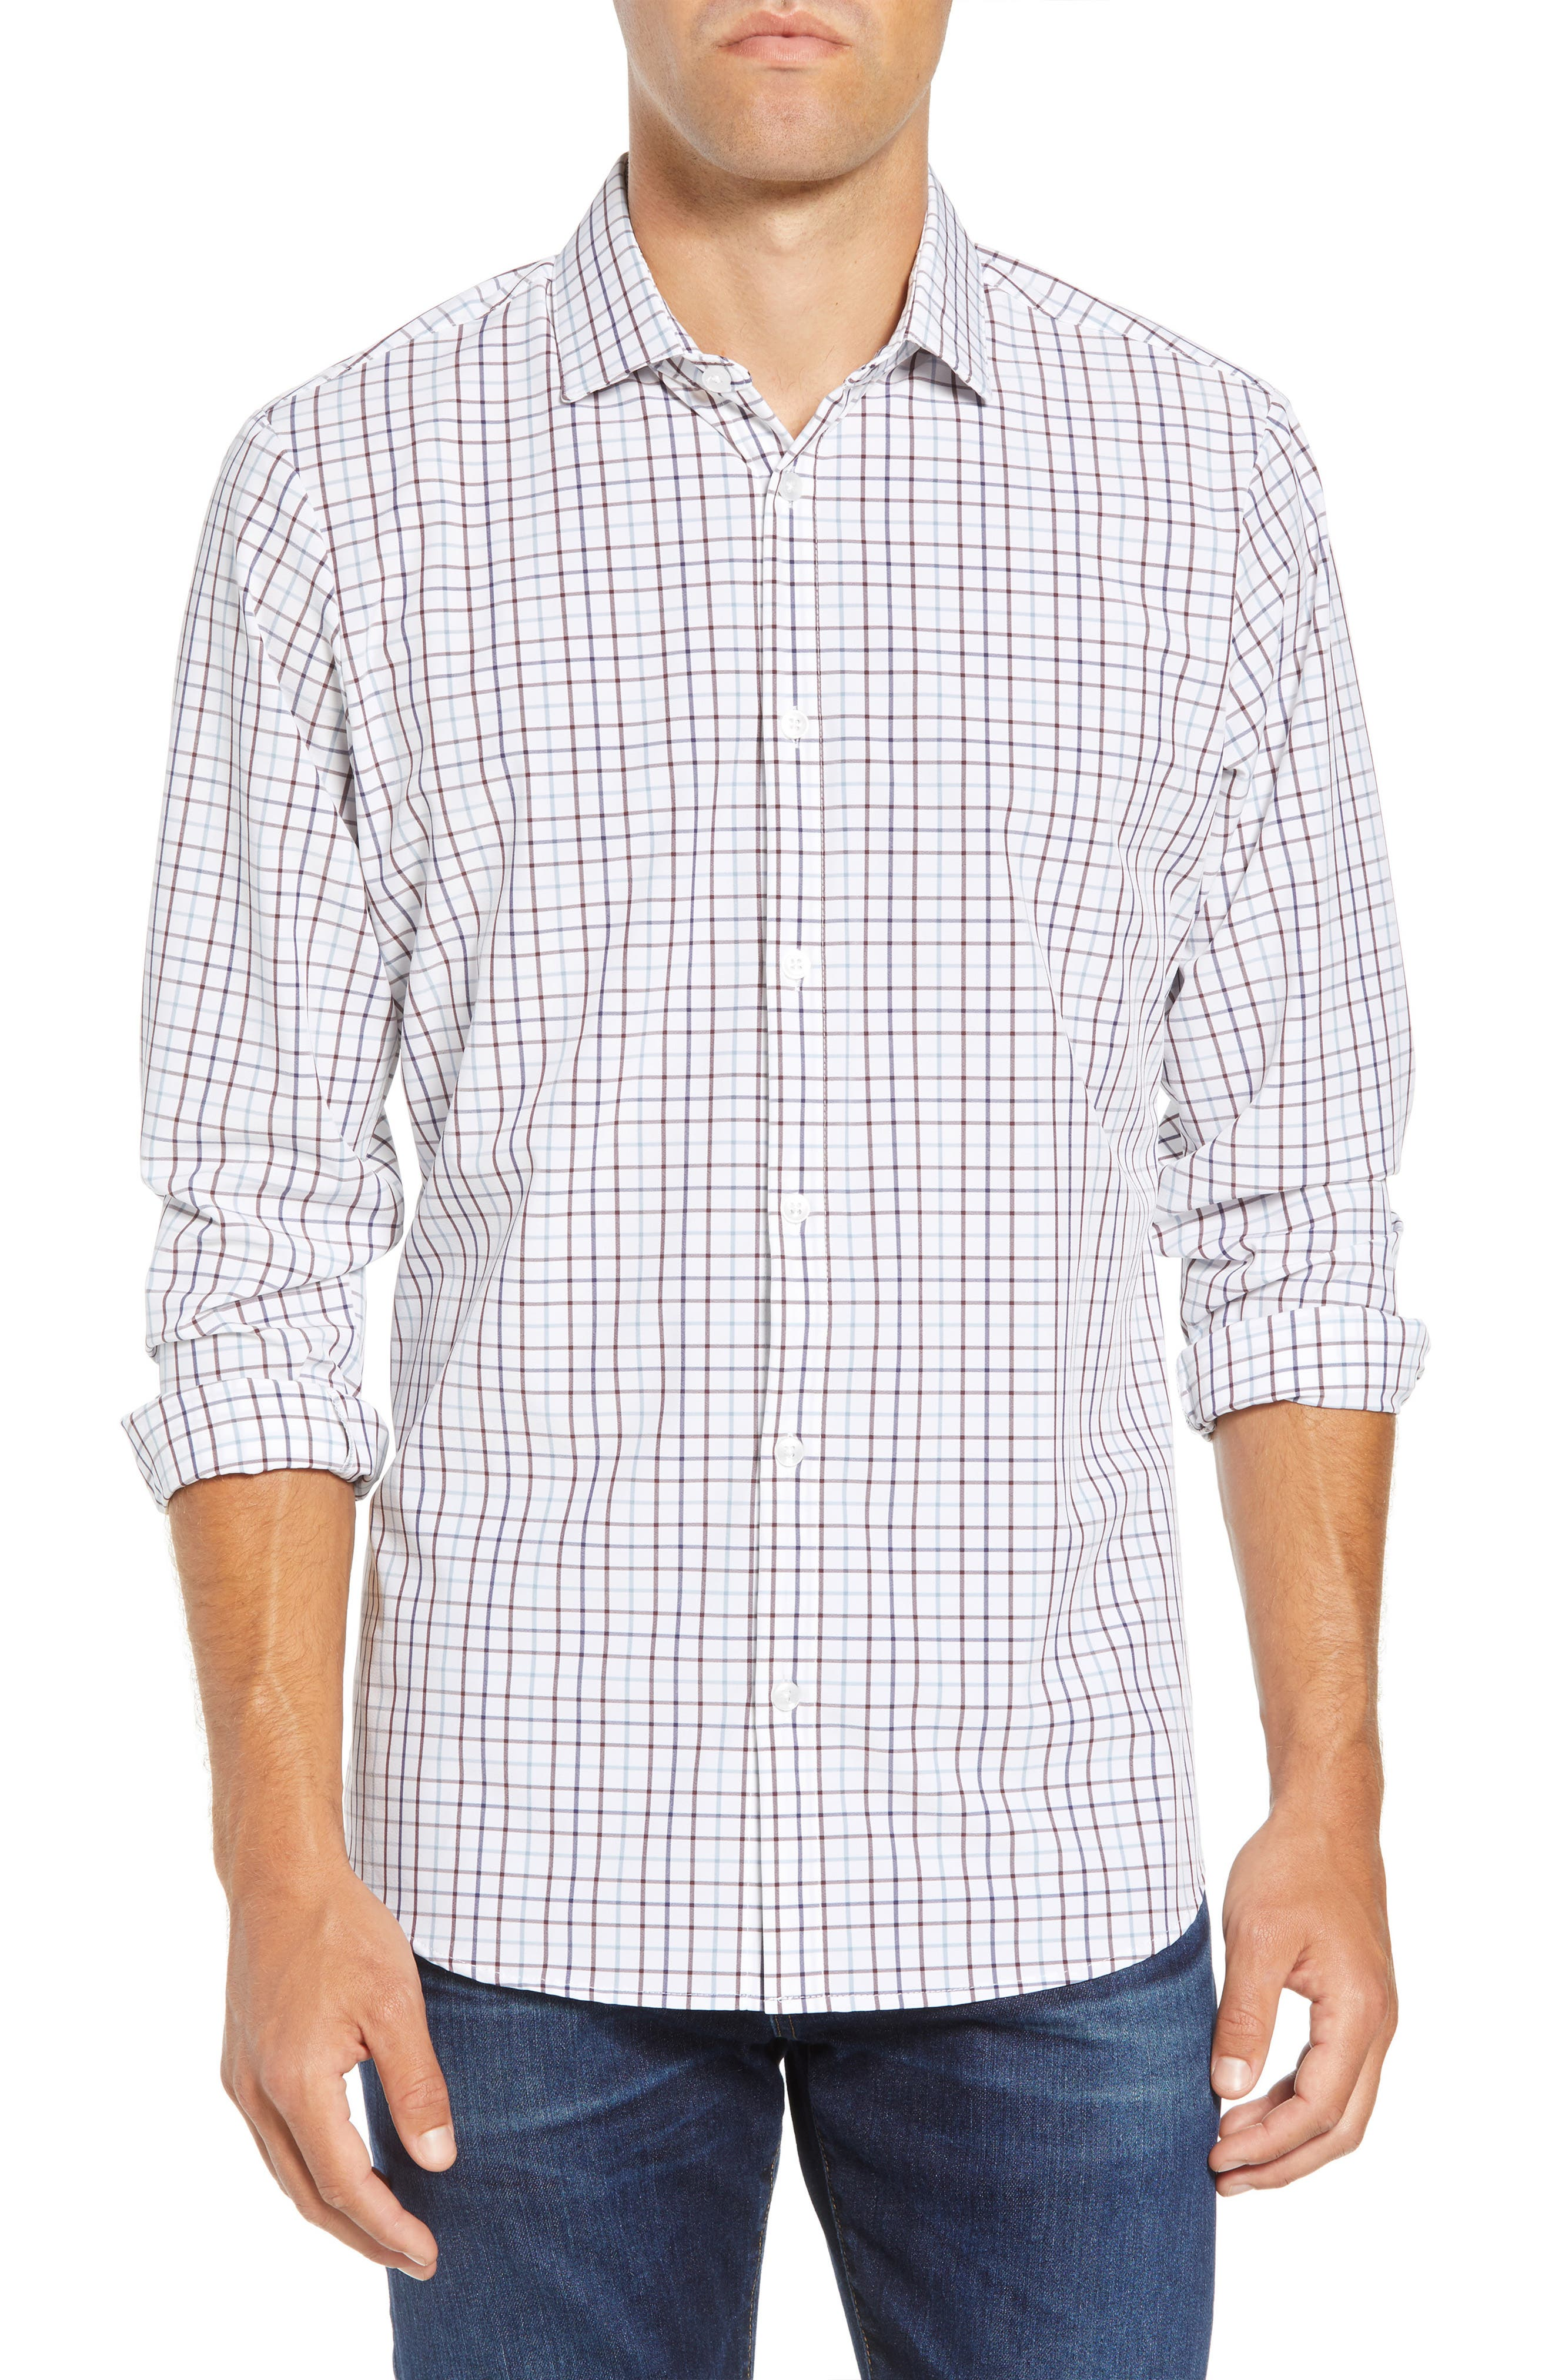 Ward Regular Fit Multi Check Performance Sport Shirt,                             Main thumbnail 1, color,                             WHITE